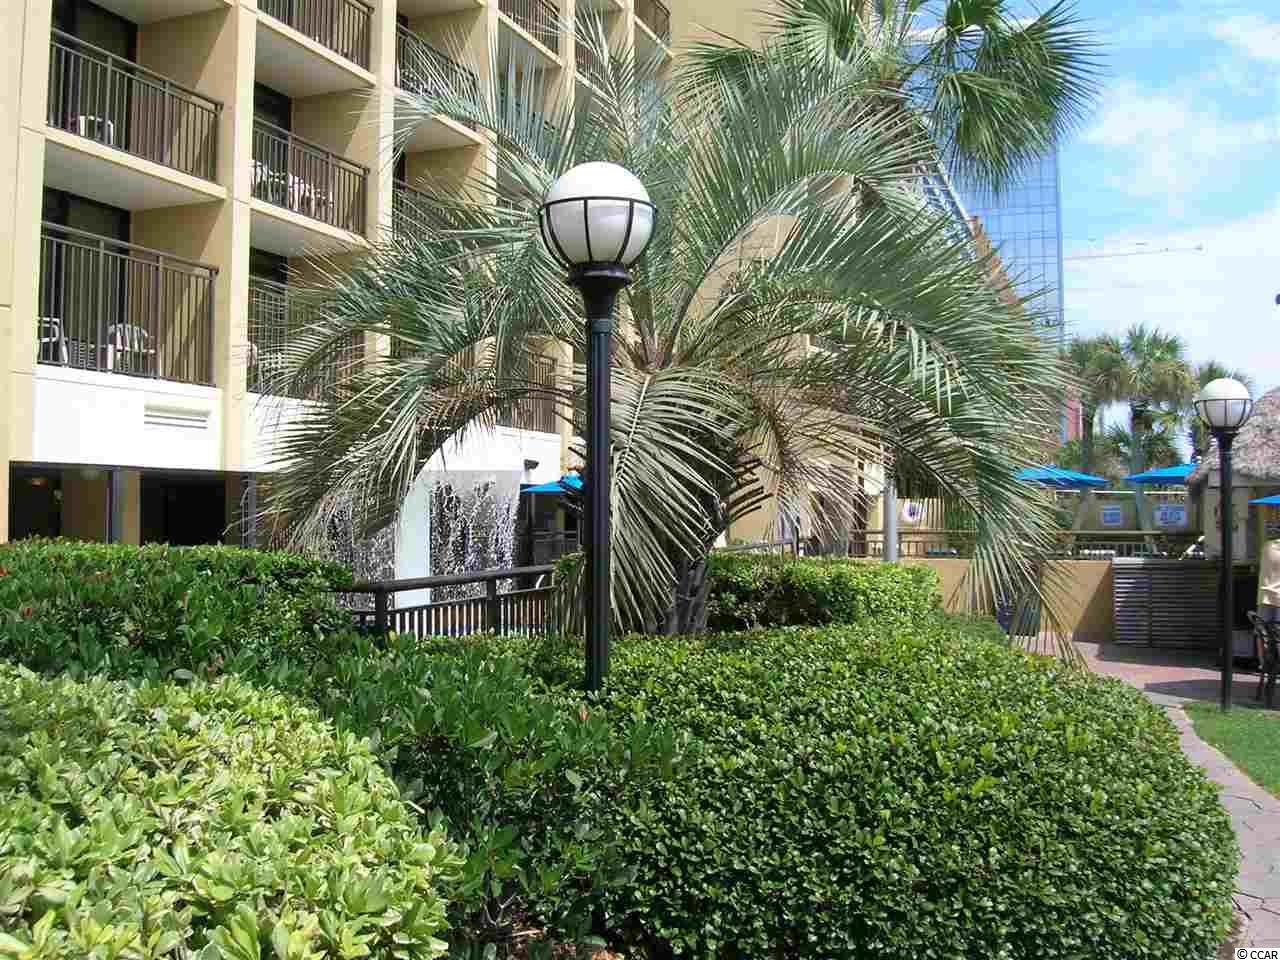 Contact your real estate agent to view this  HOLIDAY INN PAVILION condo for sale